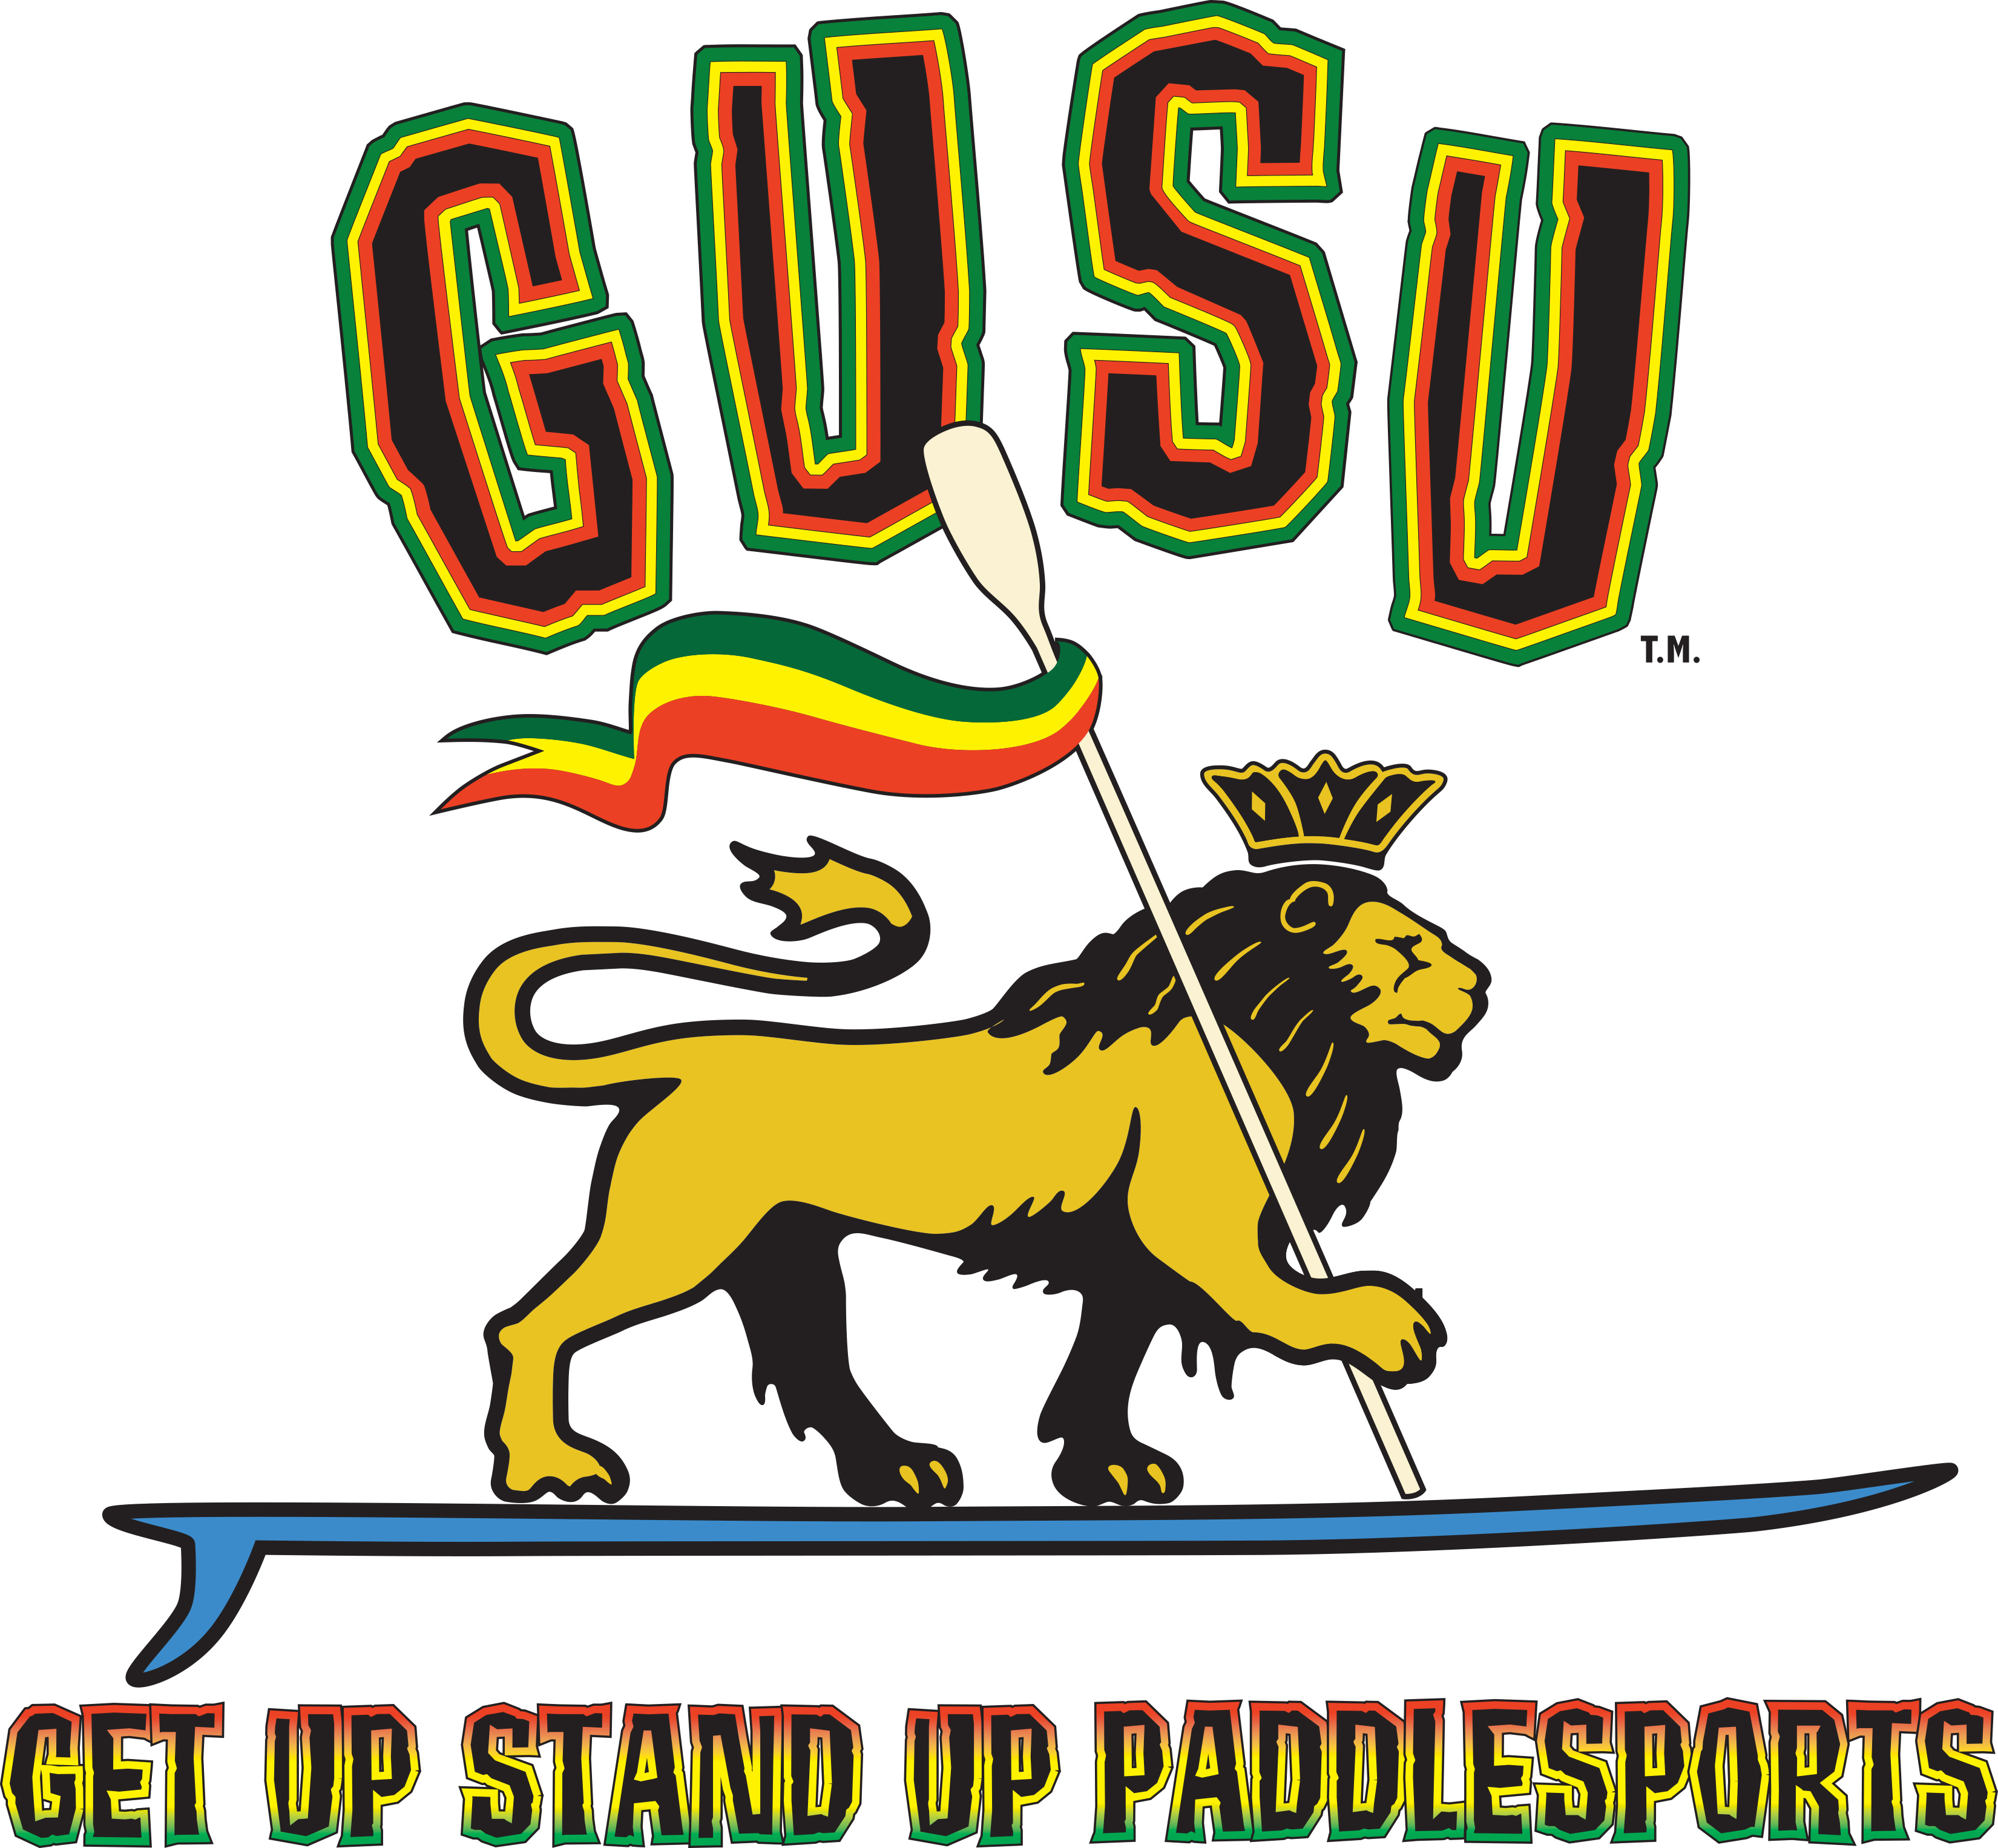 GUSU Stand Up Paddle Sports